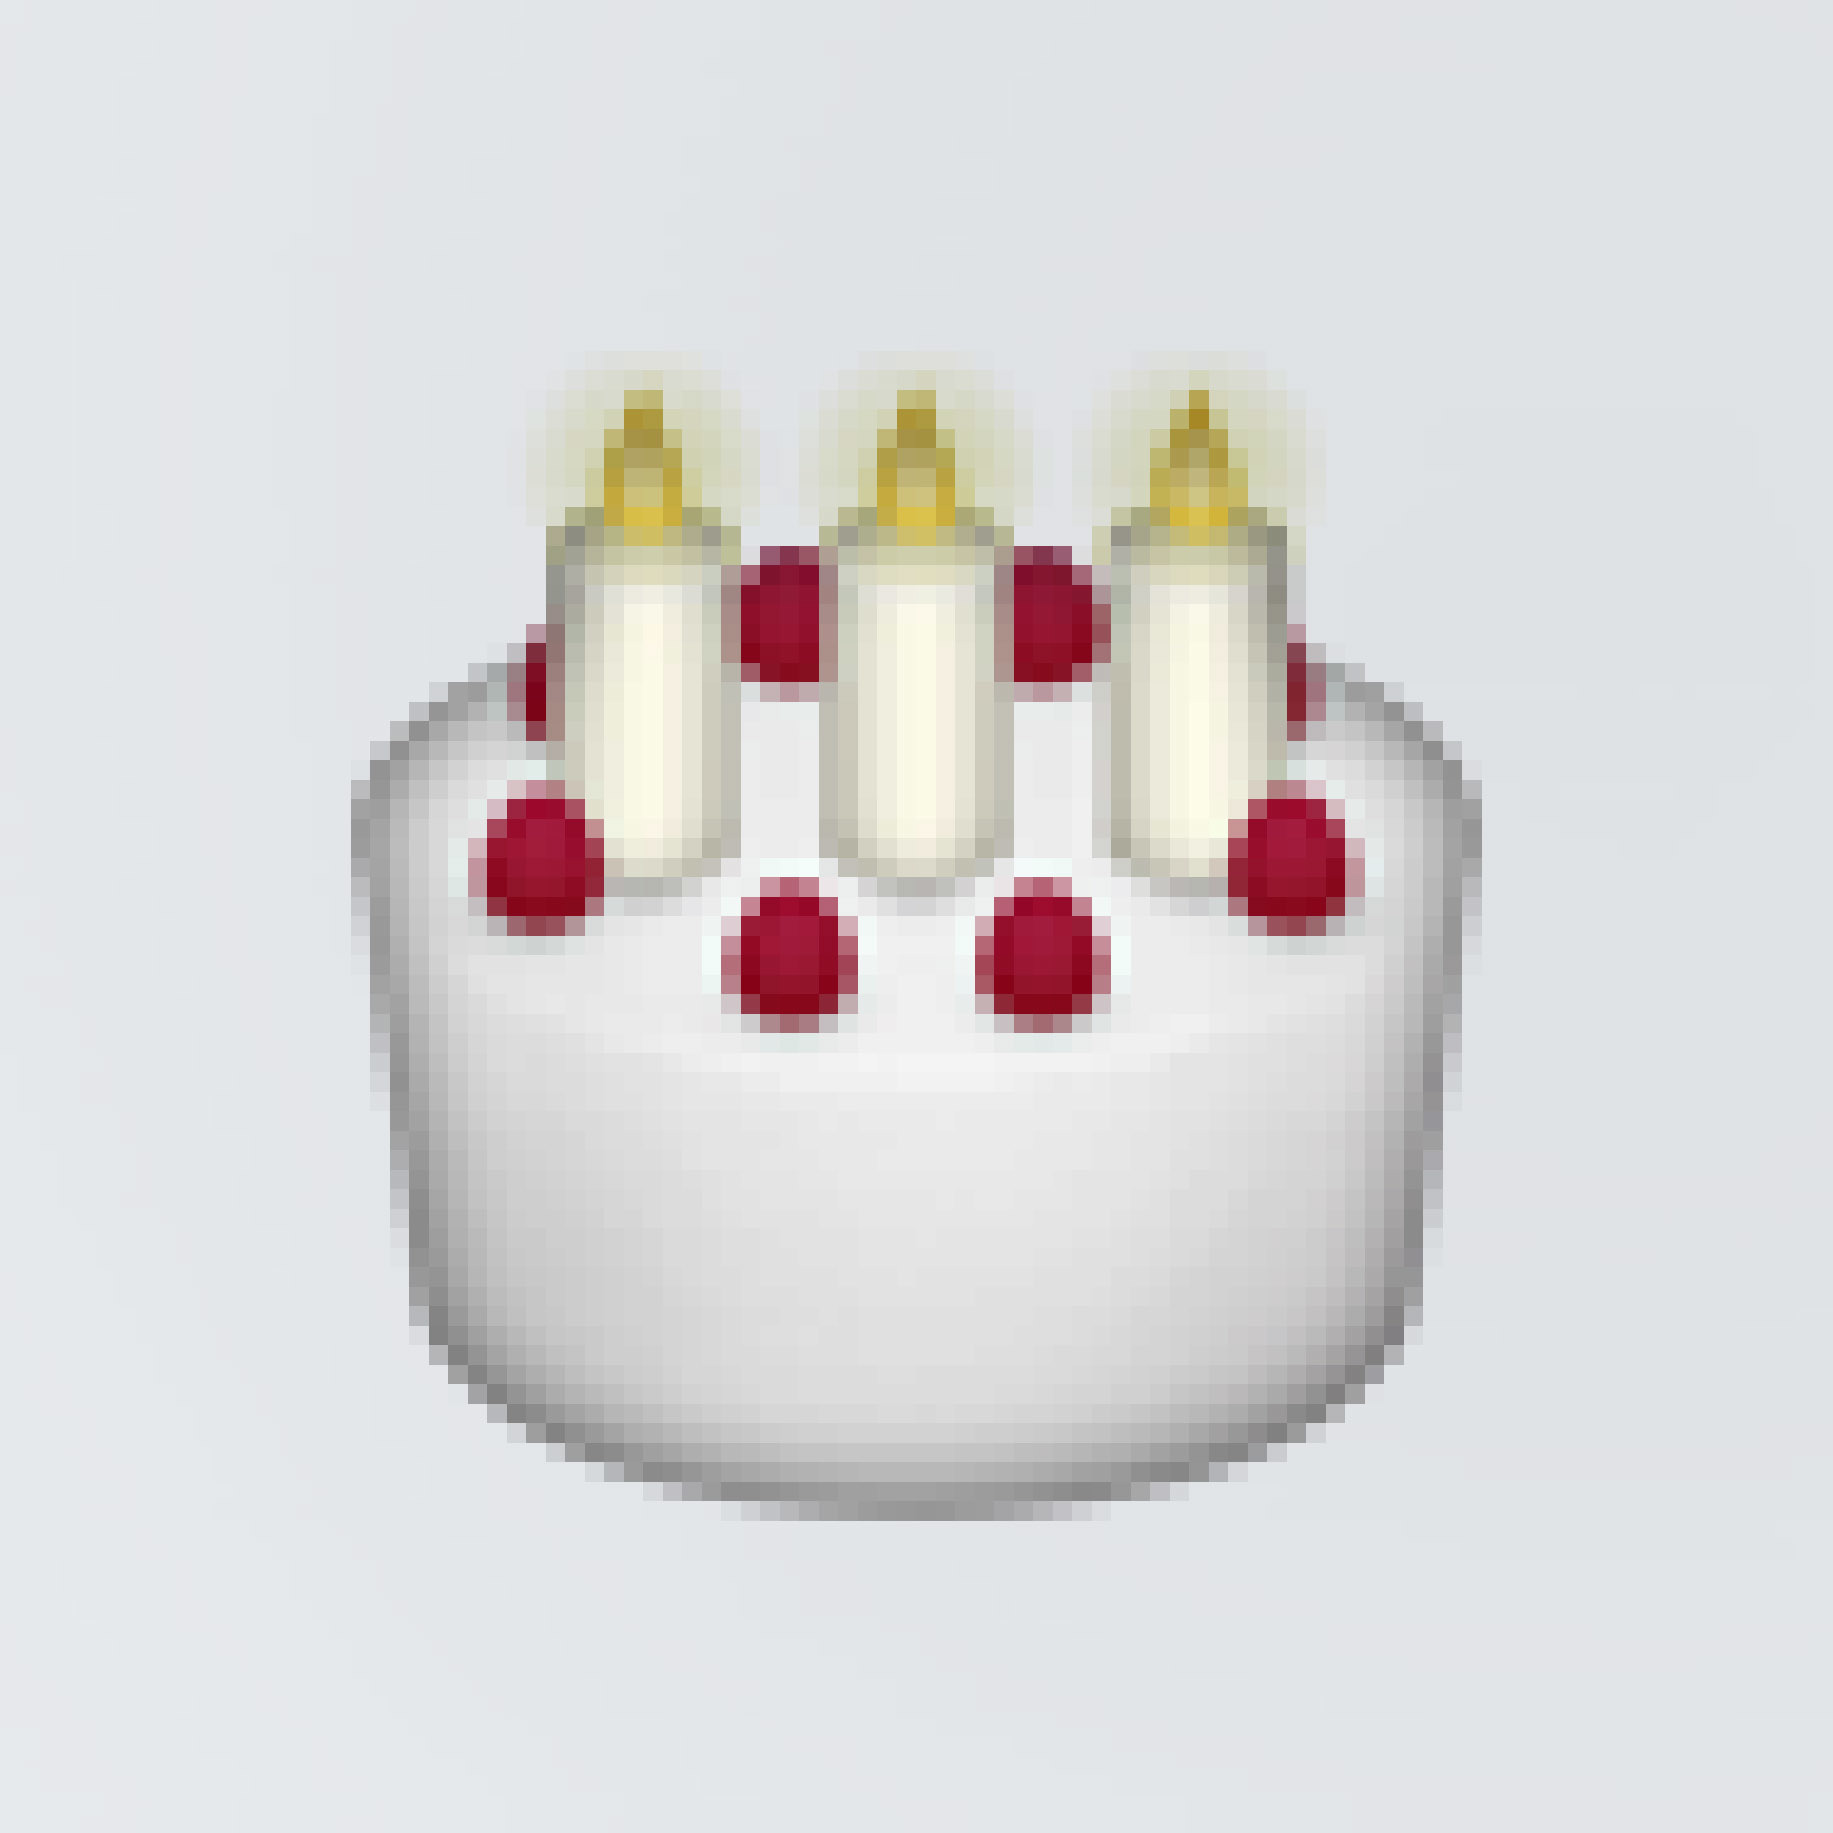 The Emoticon's birthday image